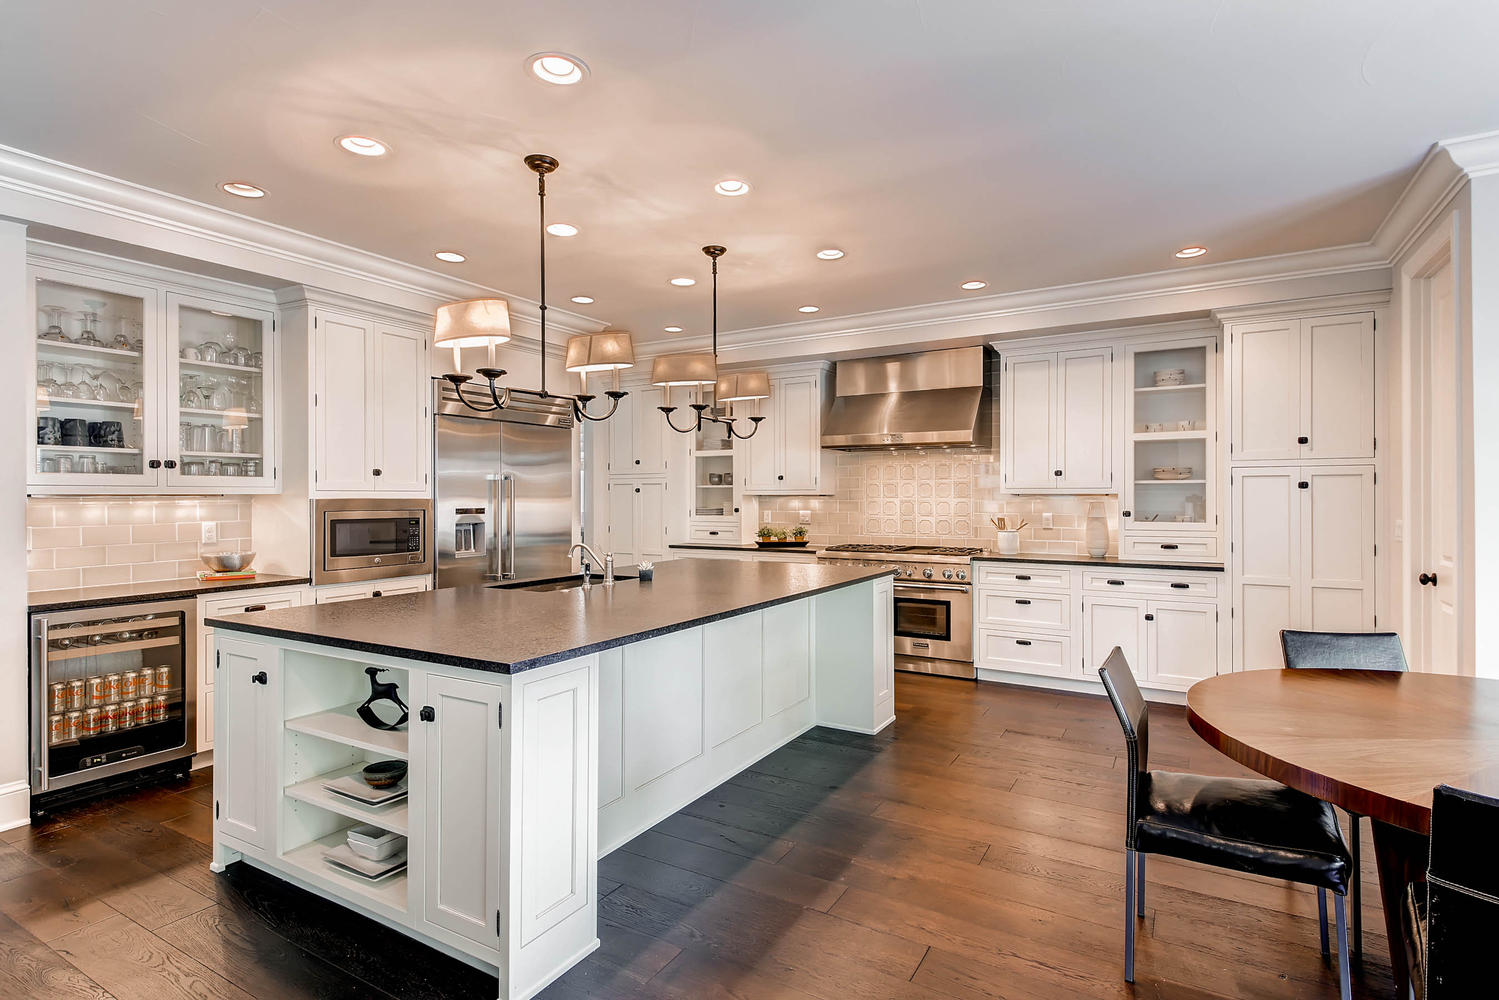 Kitchen Design Showroom Denver Co Superior Kitchen Designs Denver Co Sander And Sons